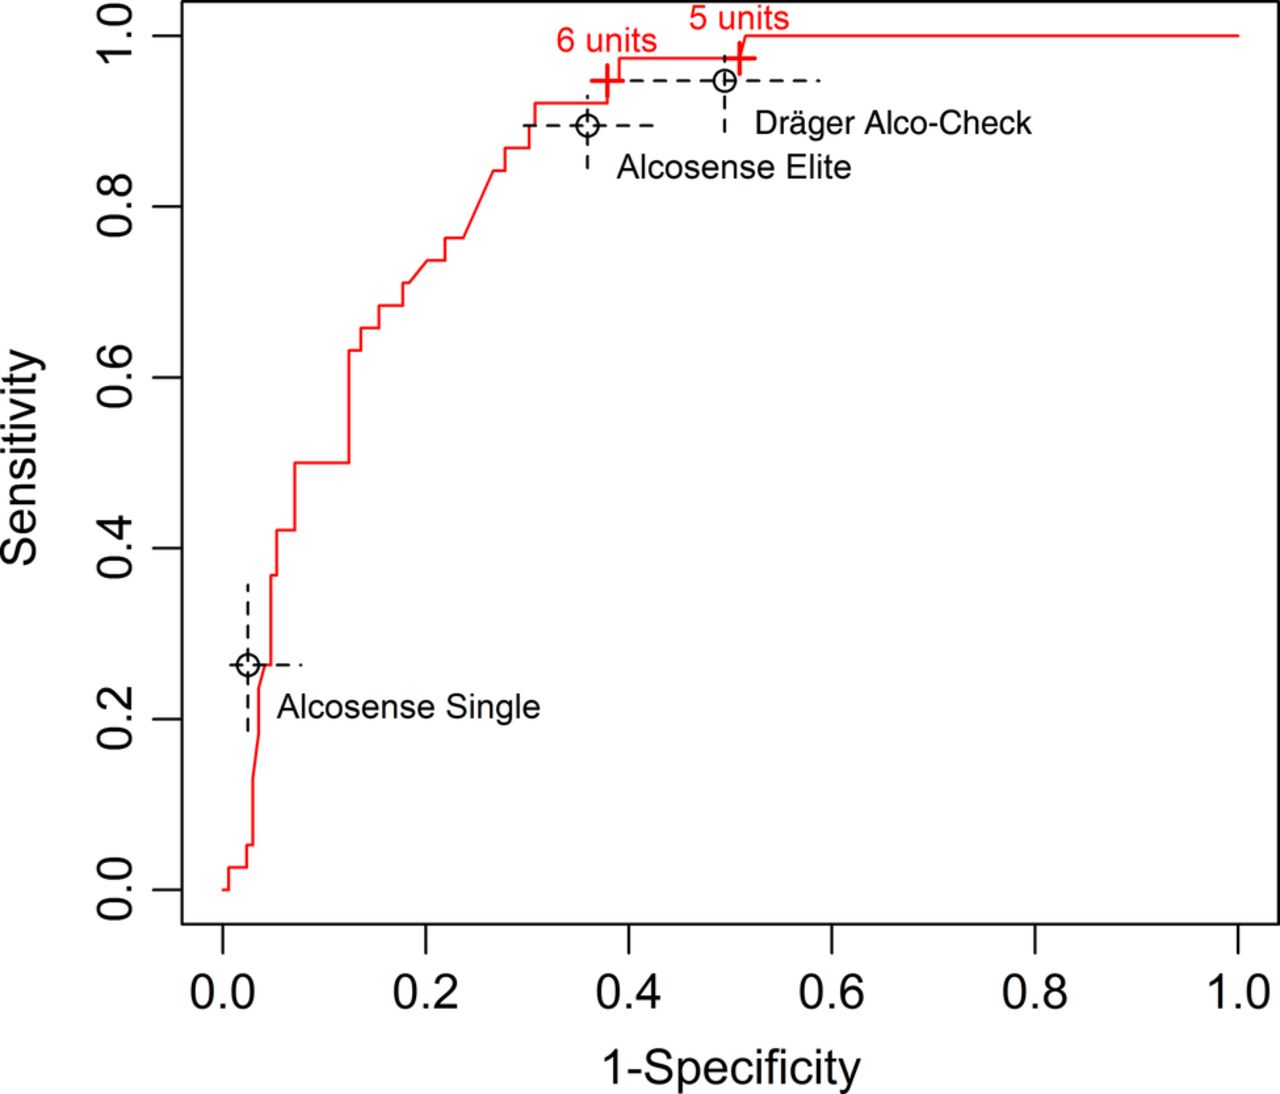 Diagnostic accuracy study of three alcohol breathalysers marketed download figure fandeluxe Image collections